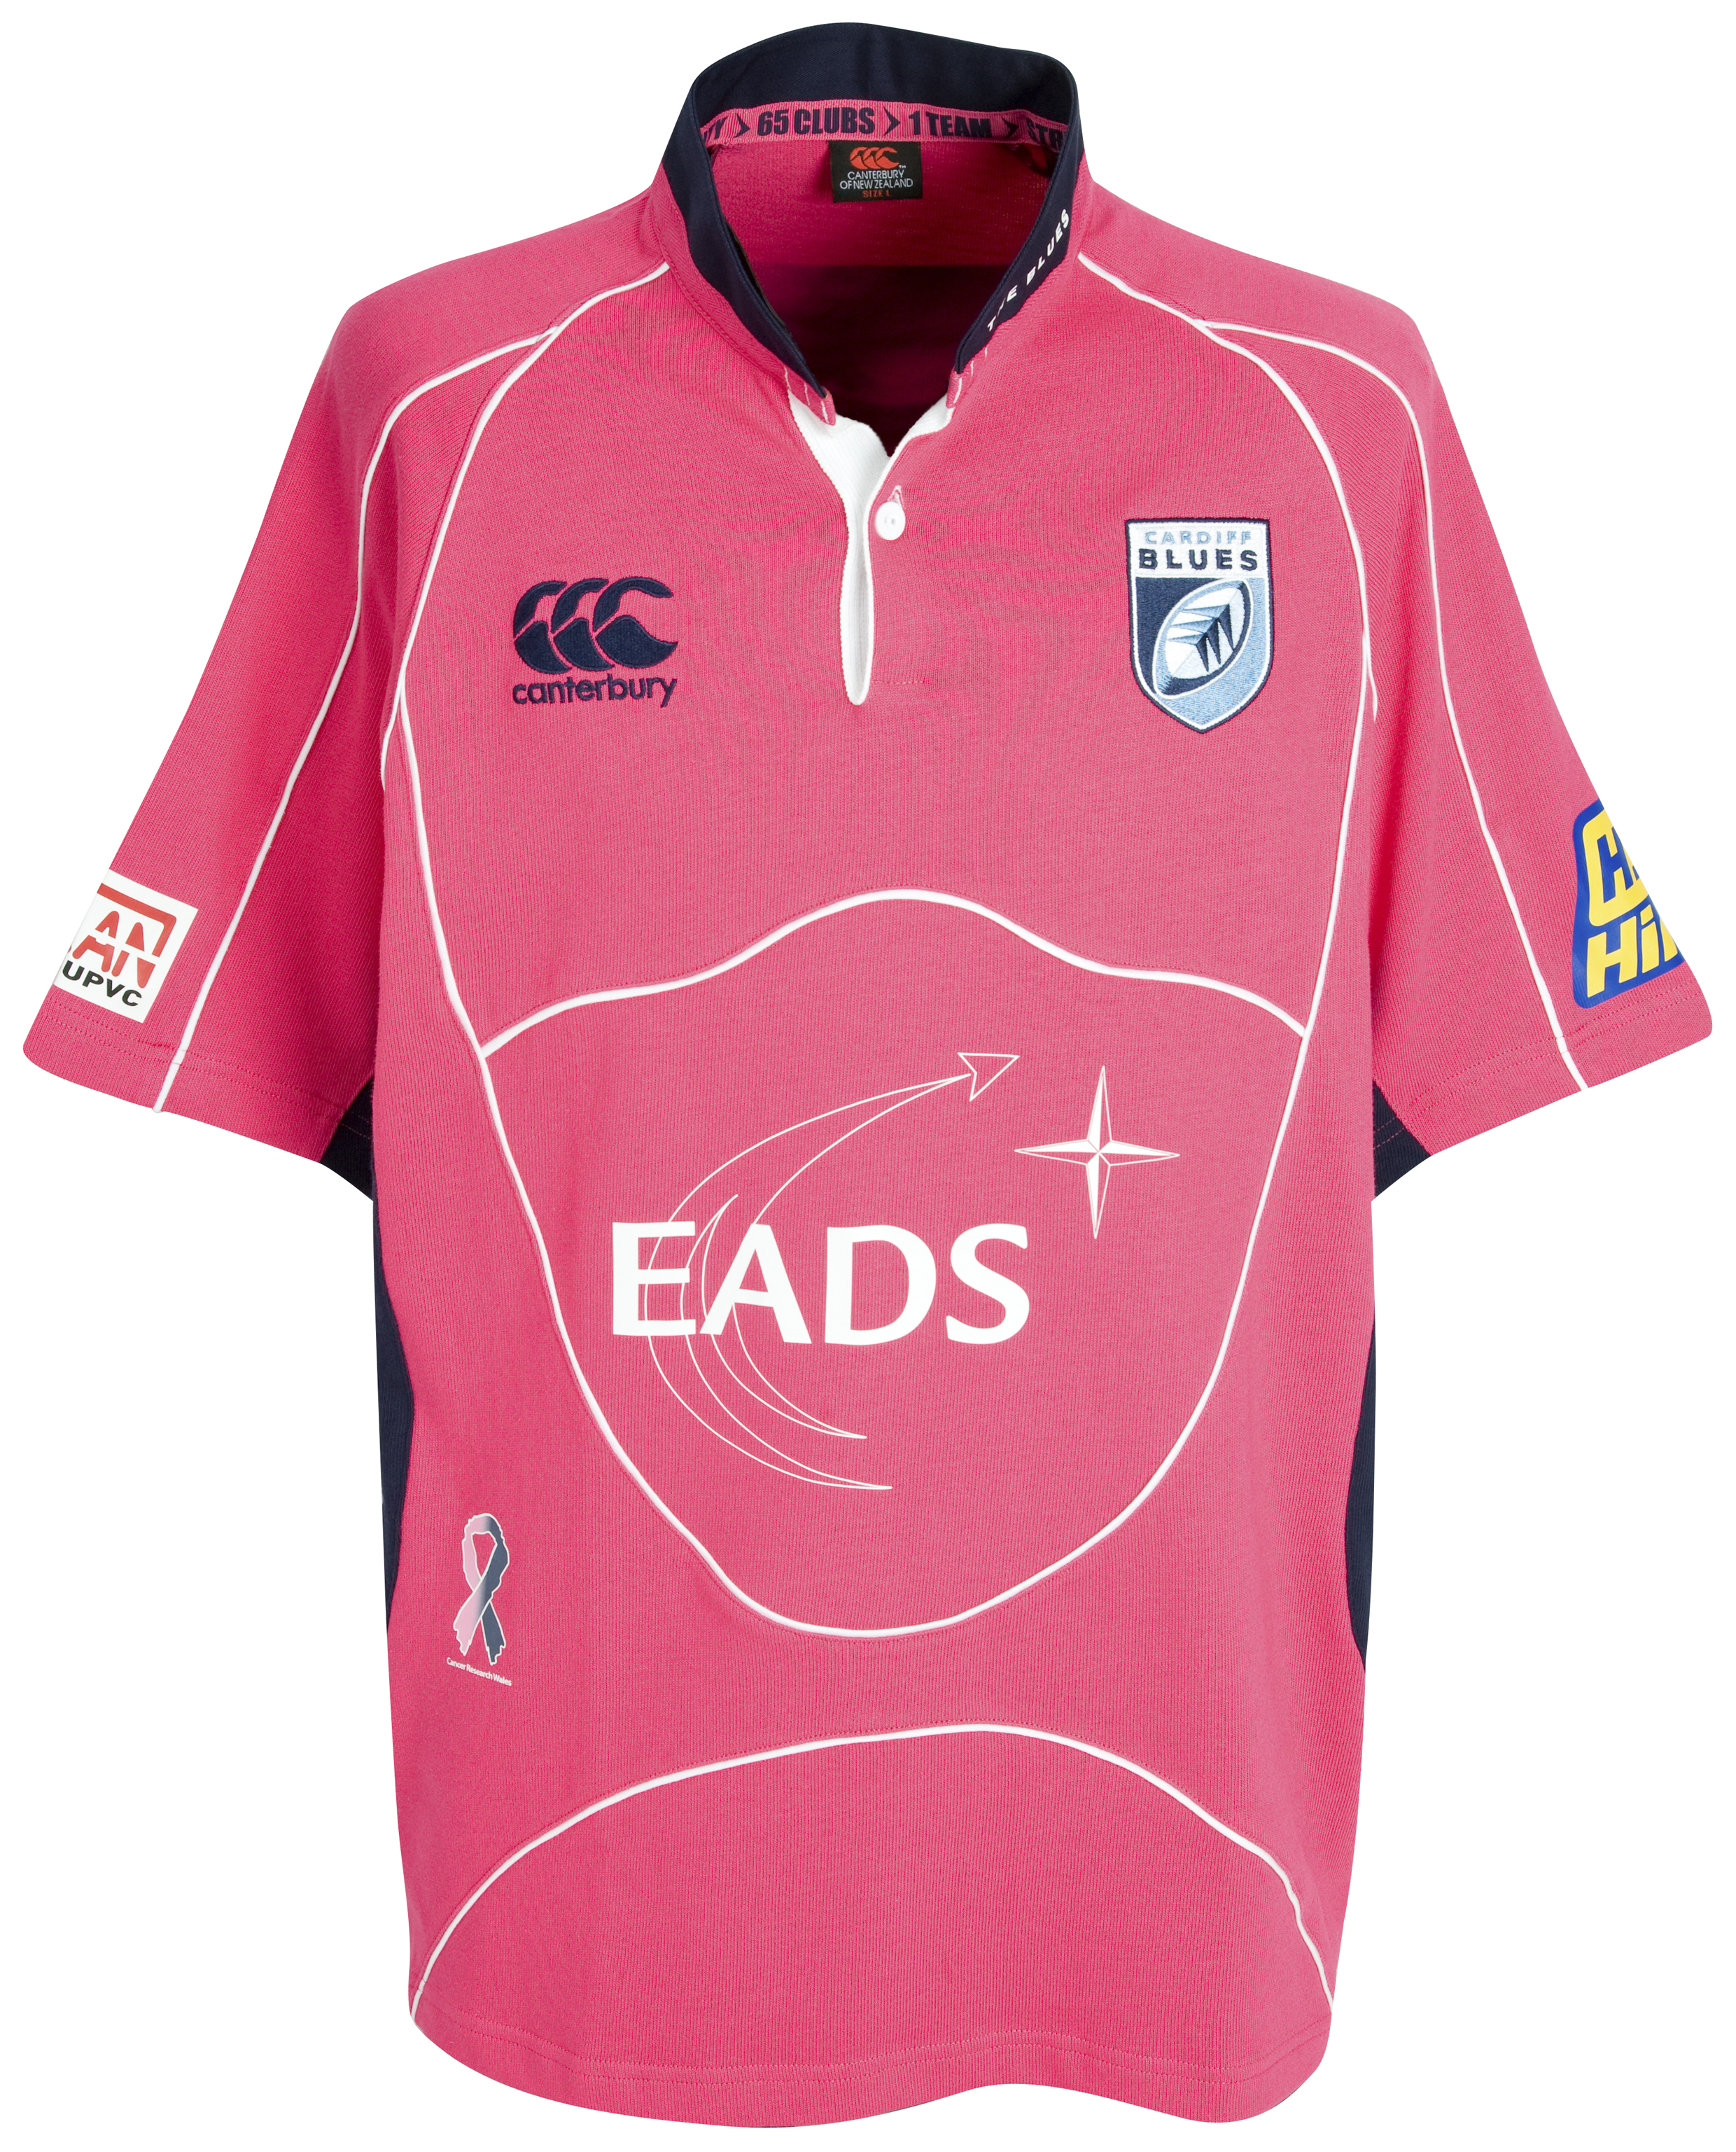 Cardiff Blues Alternative Classic Rugby Shirt 2009/10